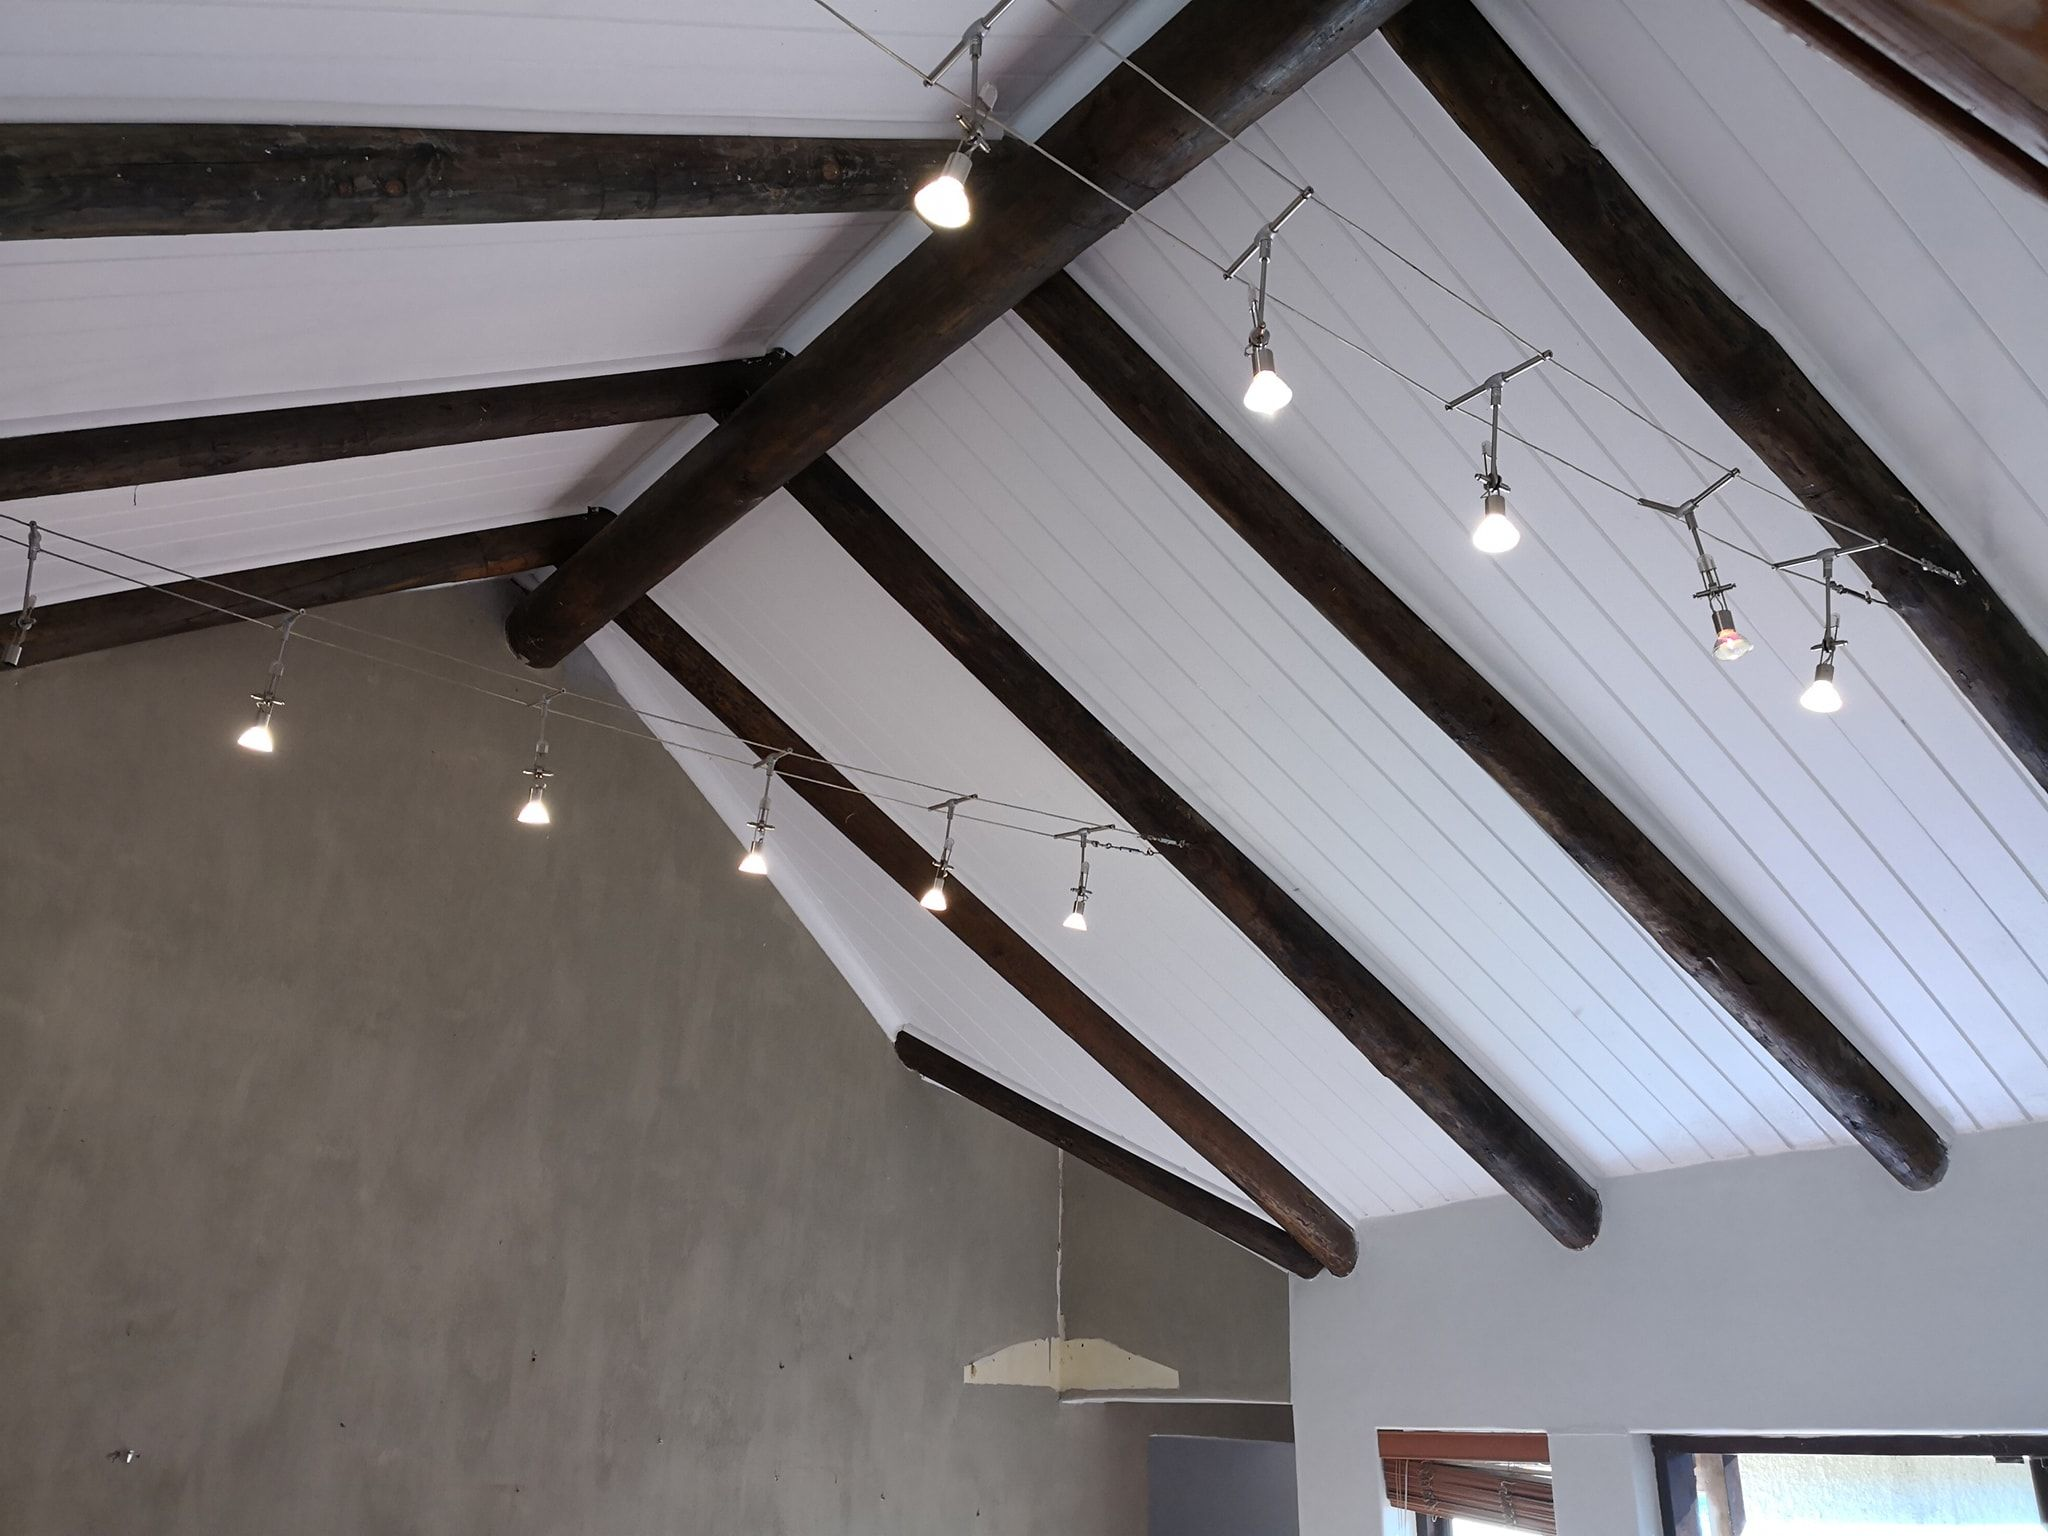 Isoboard Insulated Ceiling In A Tongue And Groove Finish Mimics The Look A Of Painted Pine Ceilin Exposed Ceilings Ceiling Design Thermal Insulation Materials